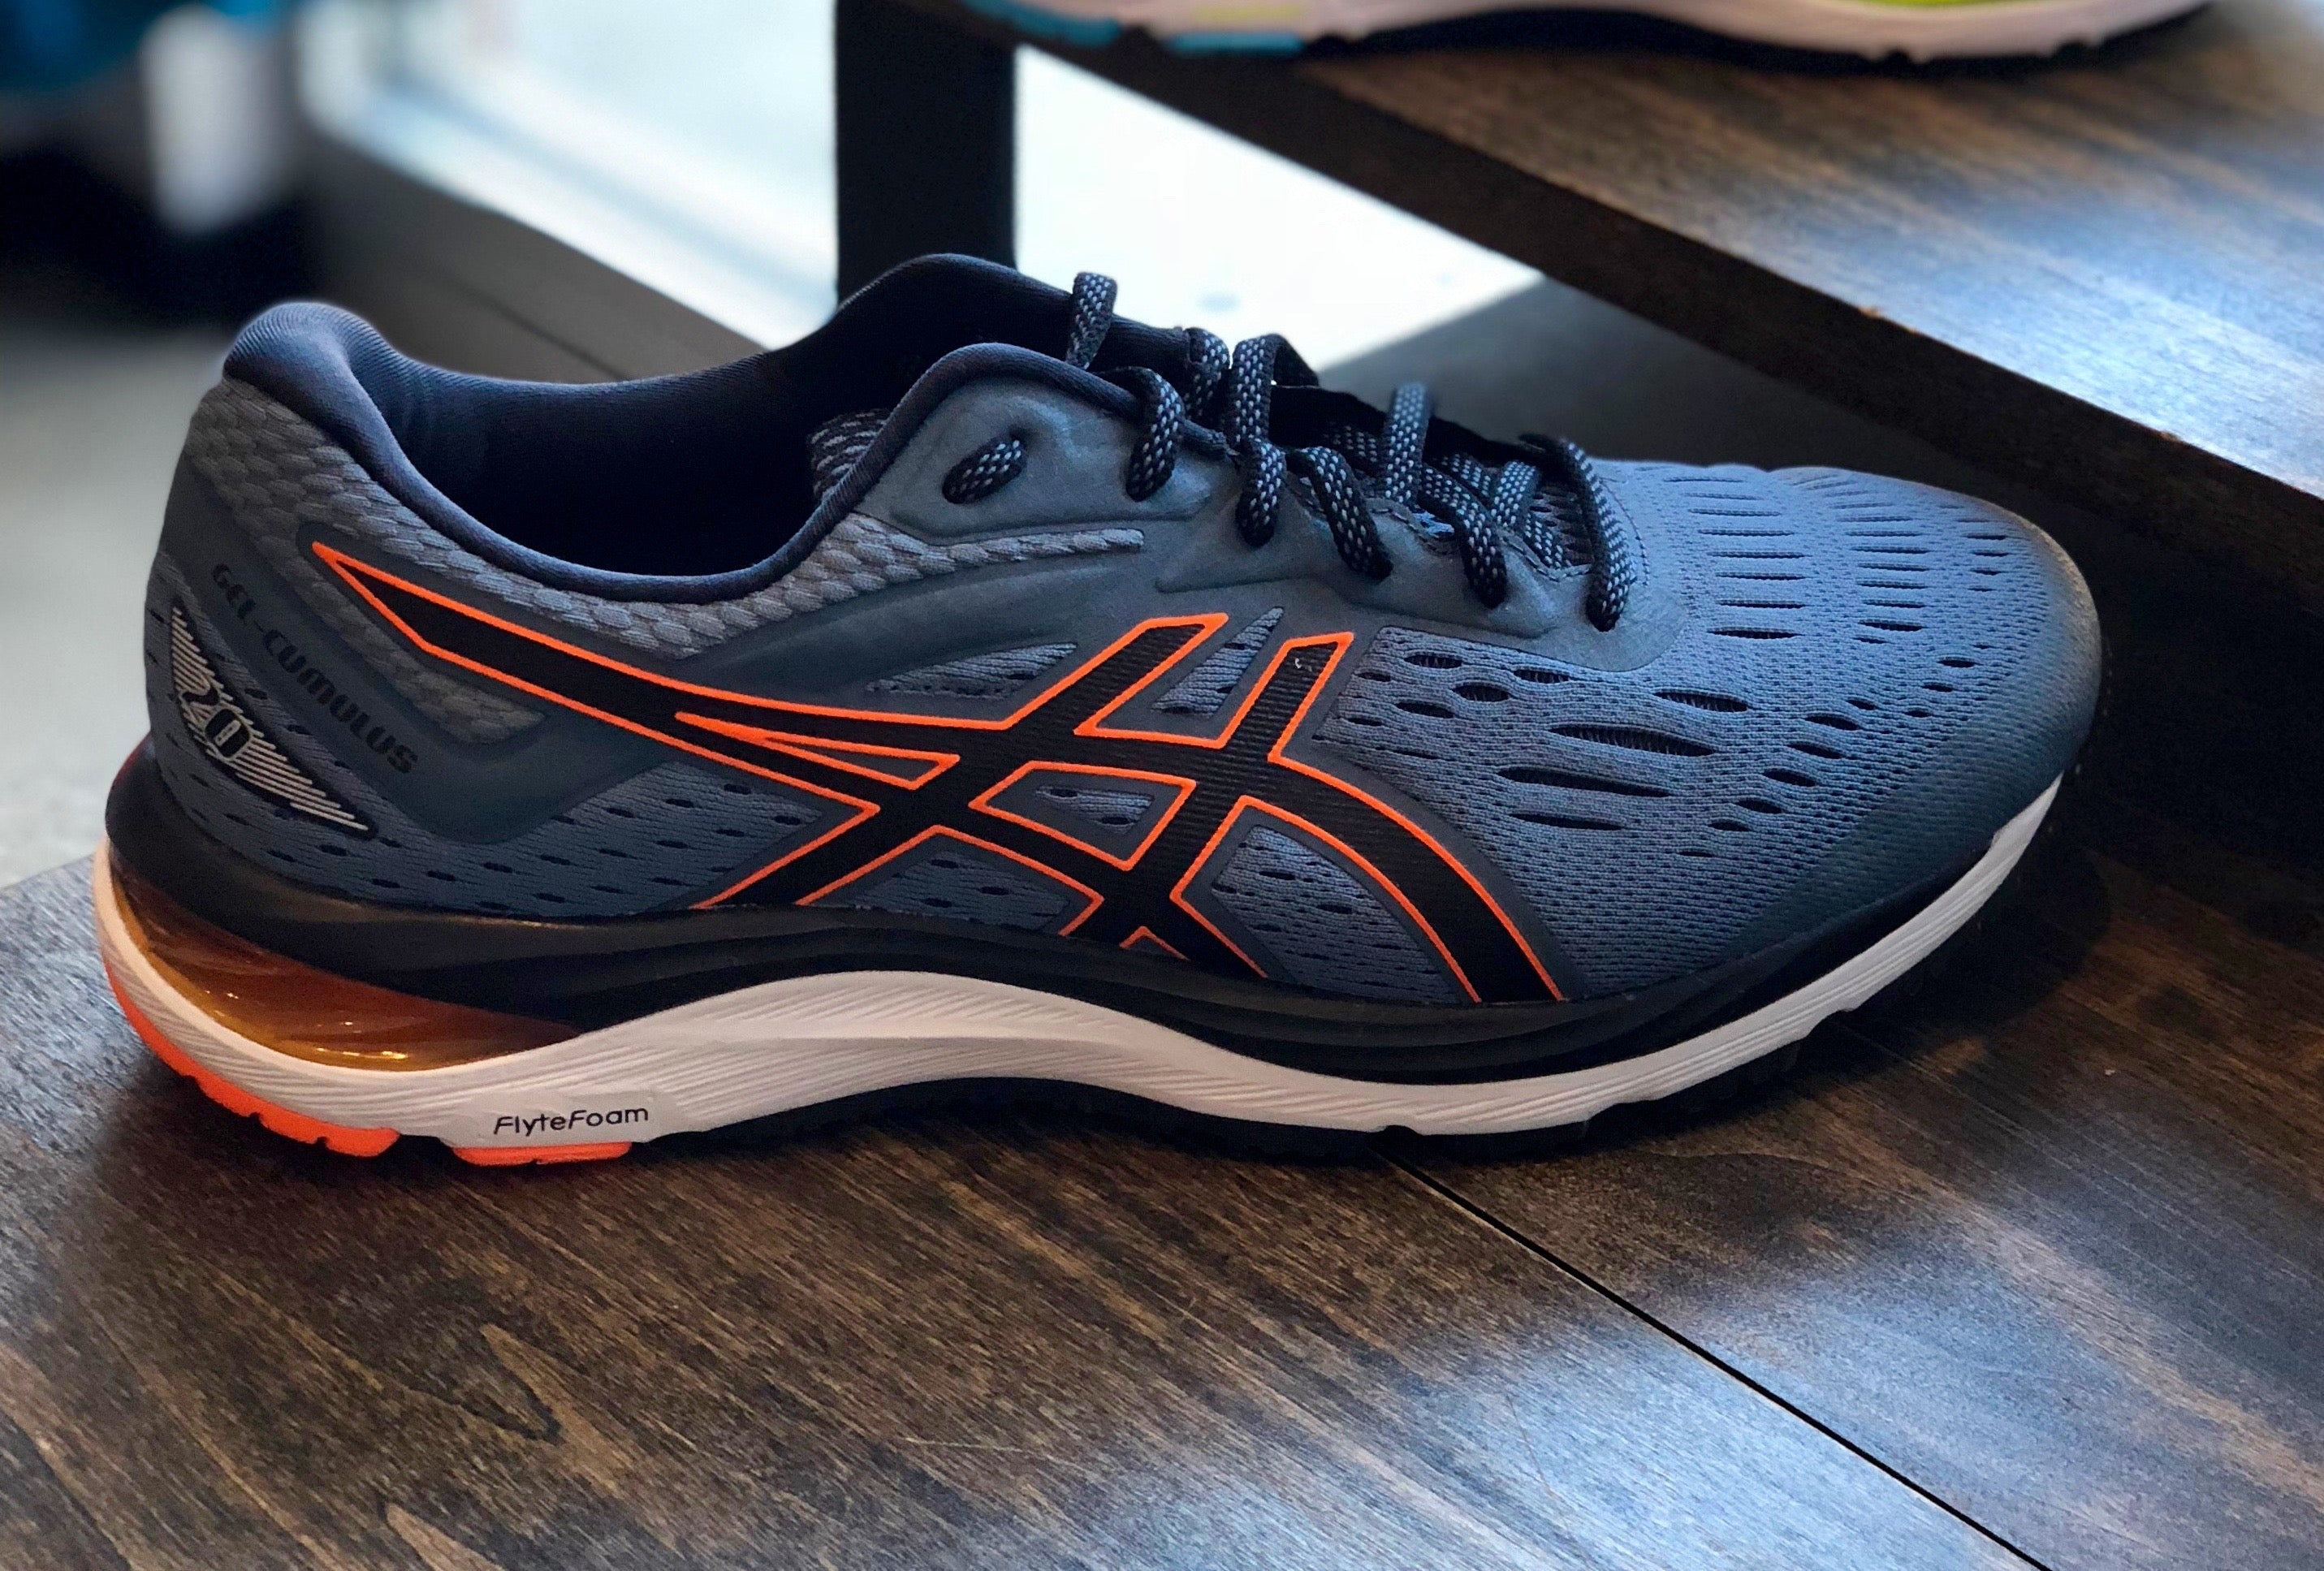 meilleures baskets 044ad d6c88 It's Back! 3 Reasons to Try the ASICS GEL-Cumulus 20 ...